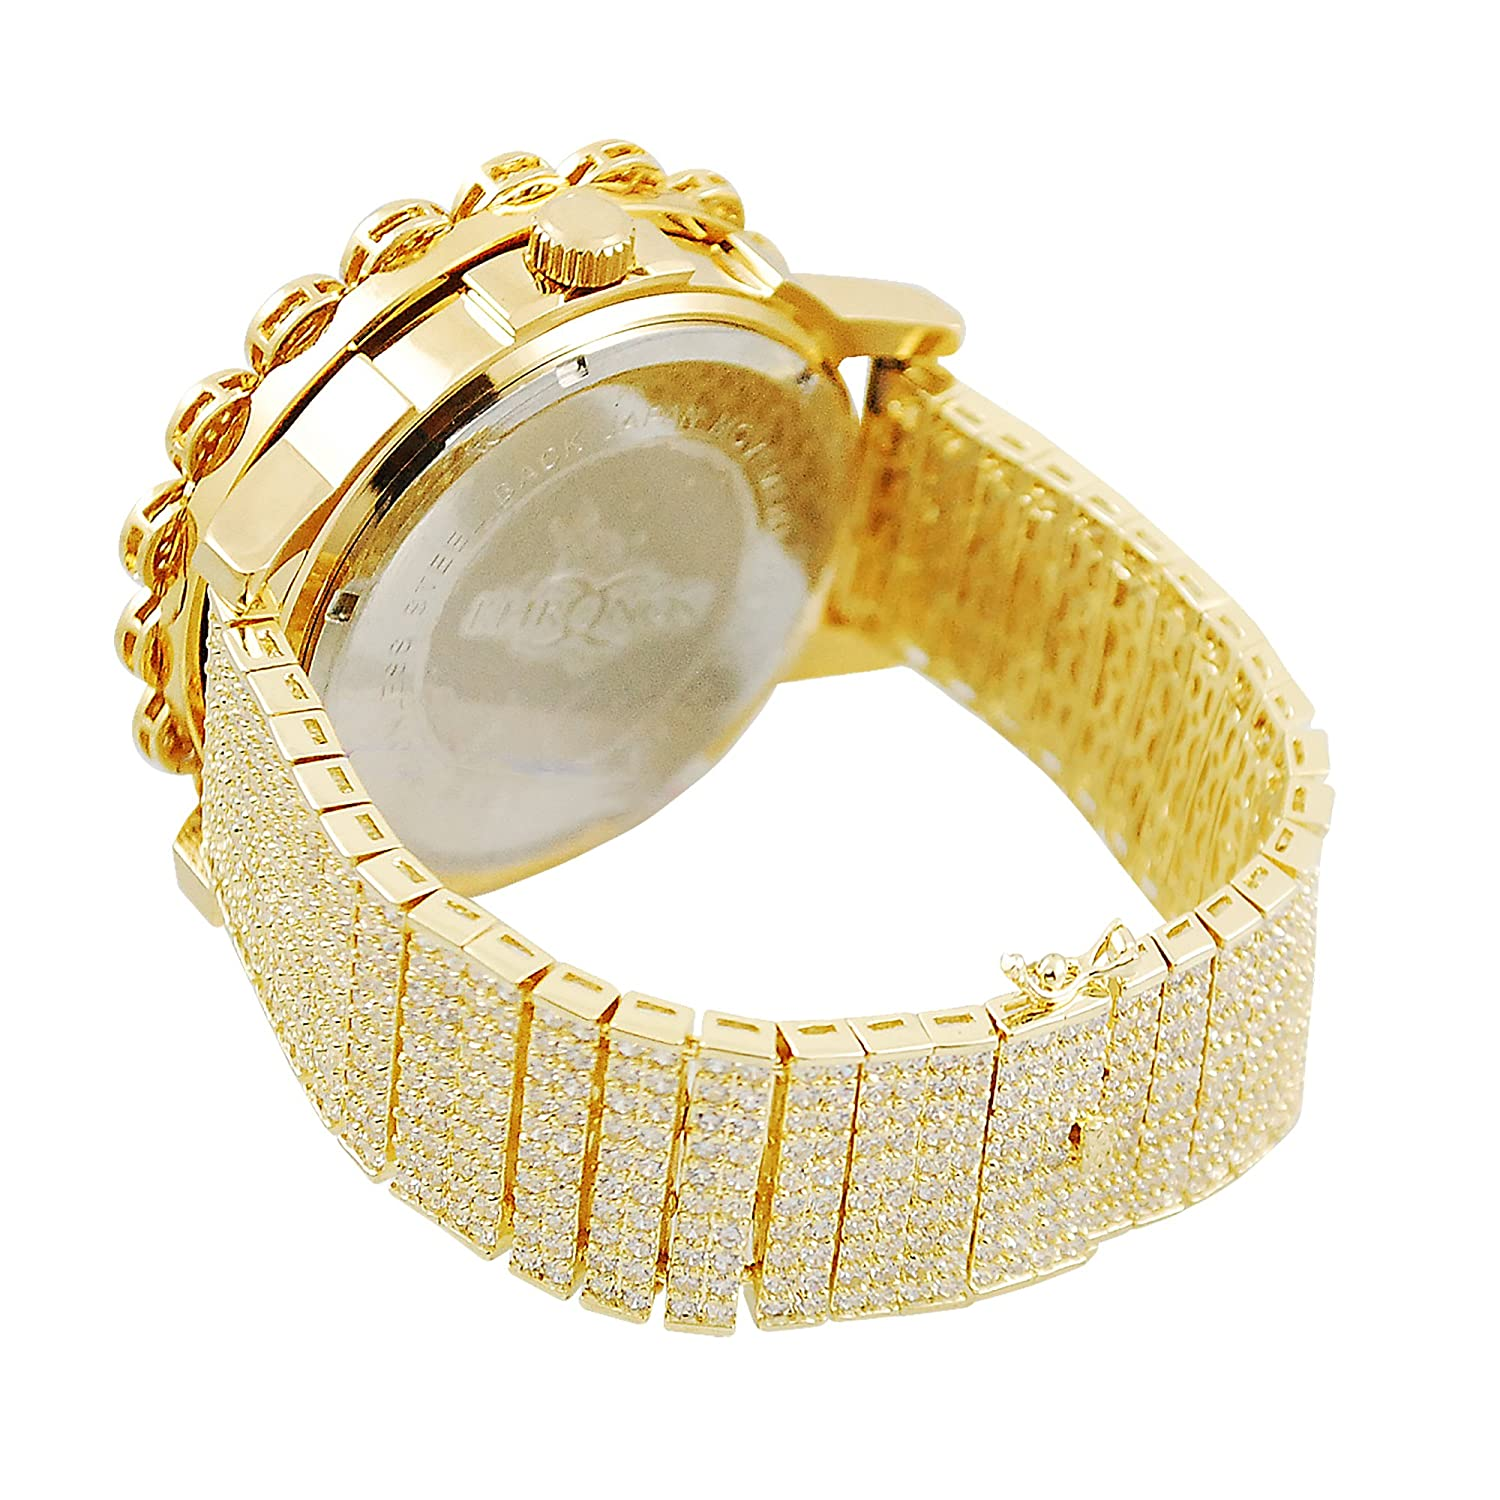 Amazon.com: Golden Cluster Design Kronos Special Real Diamond Classic Watch Chic Bezel Set: Watches